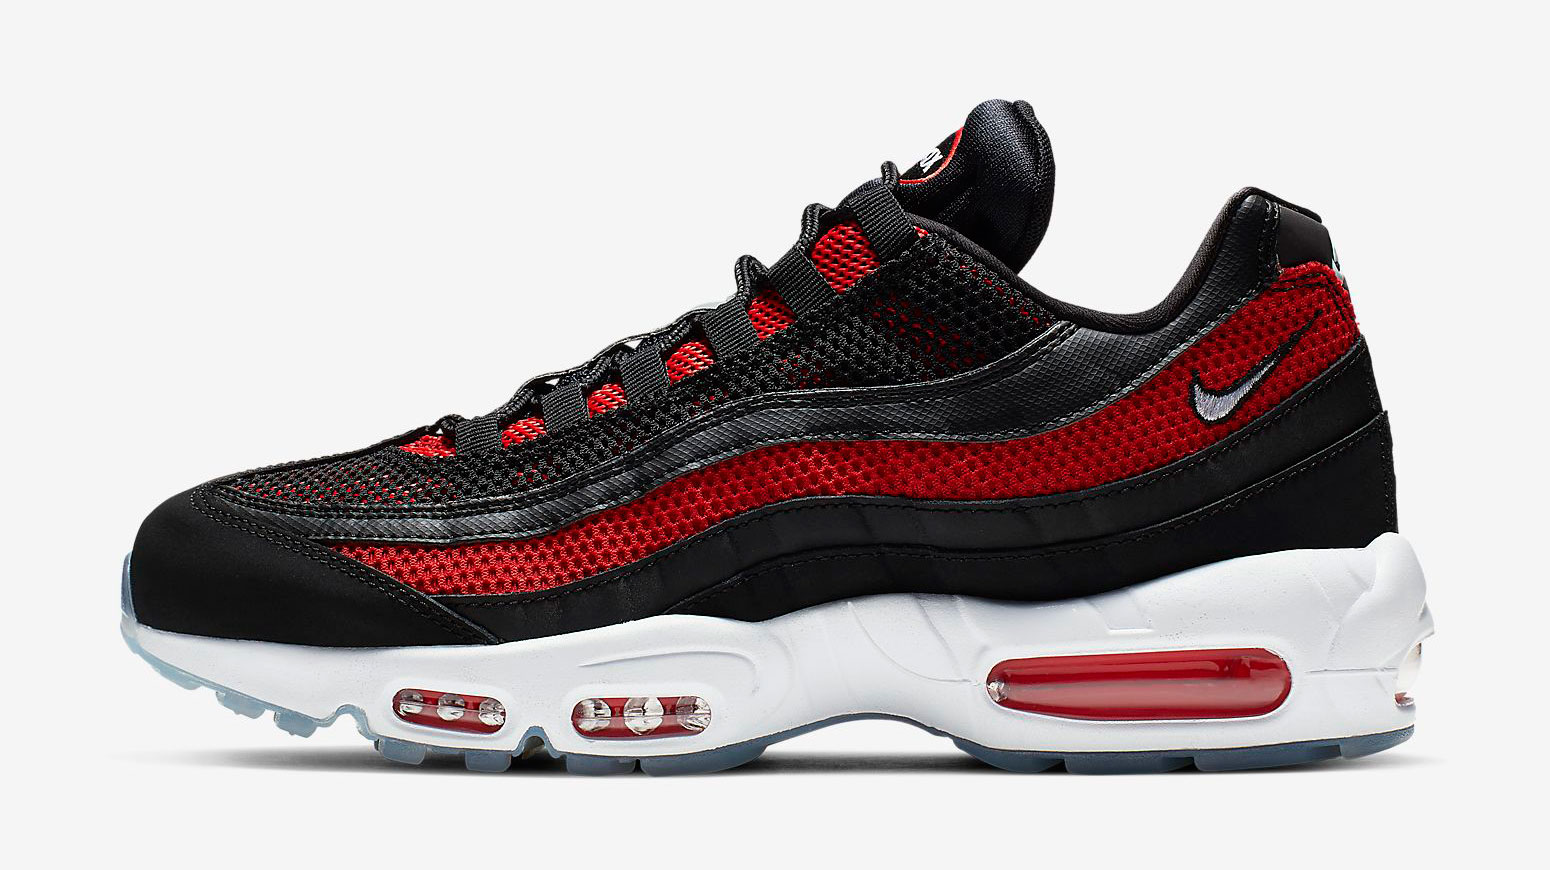 nike-air-max-95-bred-running-with-bulls